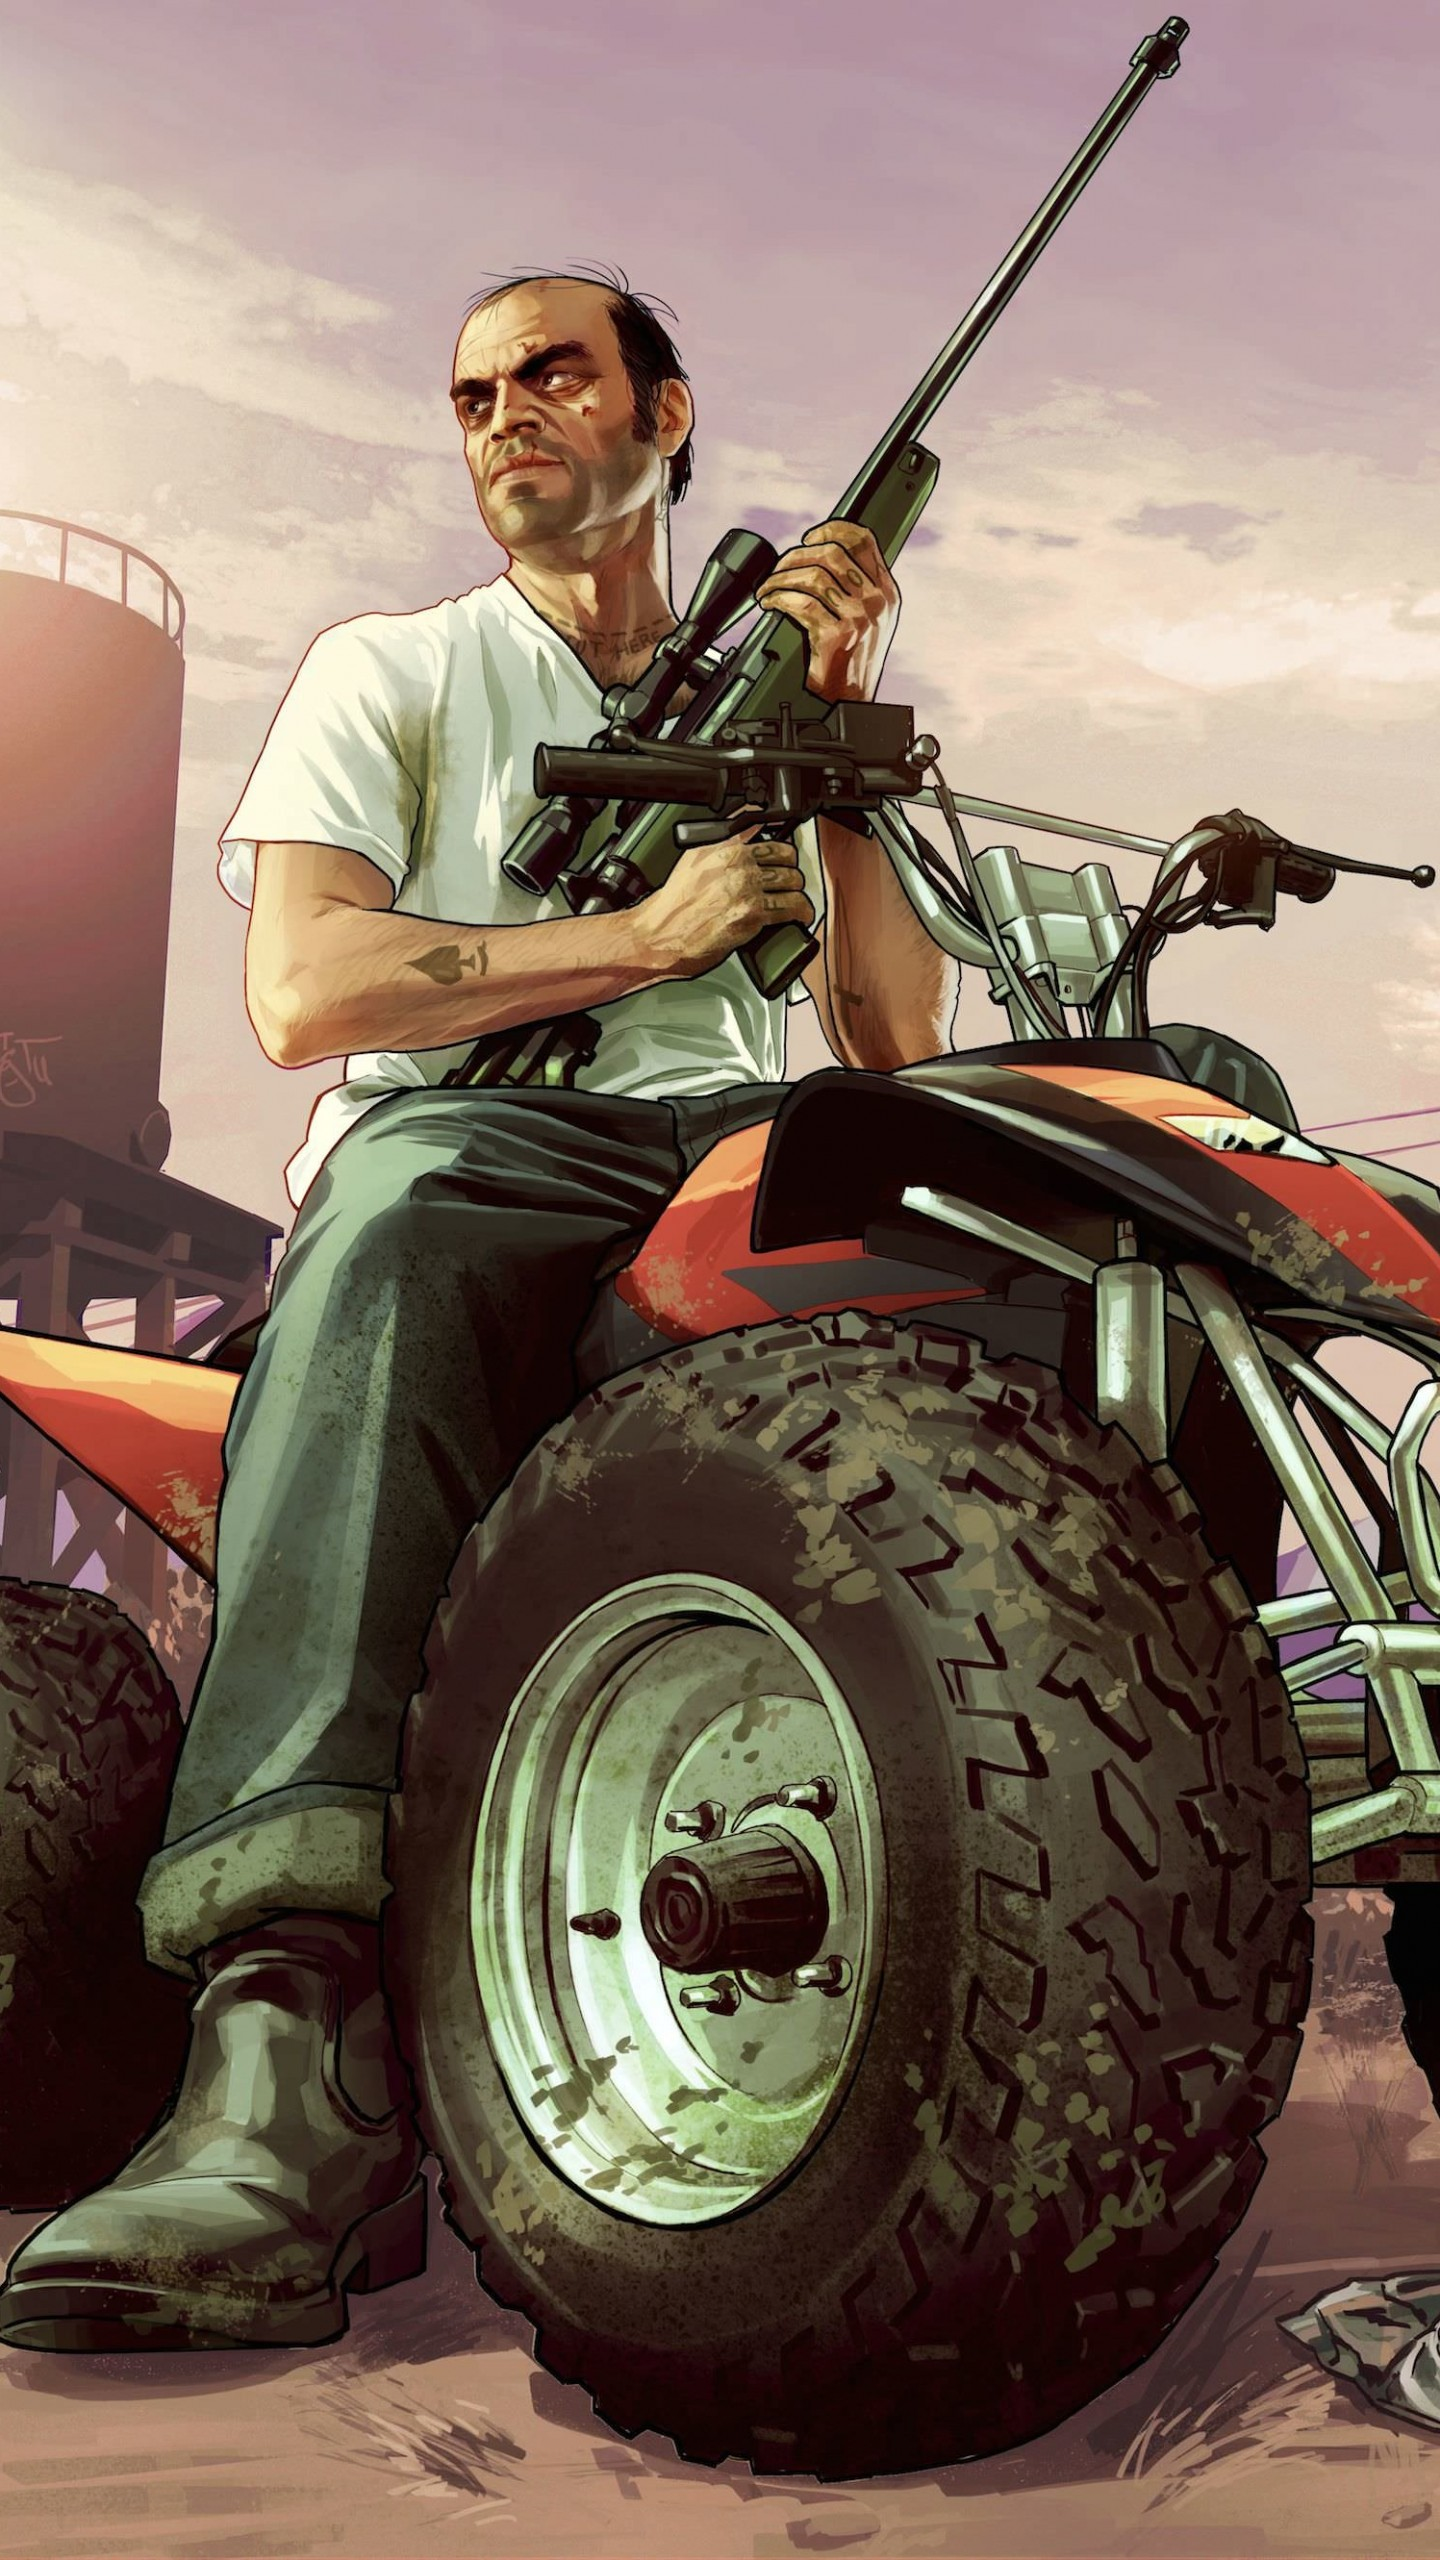 GTA 5 : Trevor Philips Wallpaper for SAMSUNG Galaxy Note 4